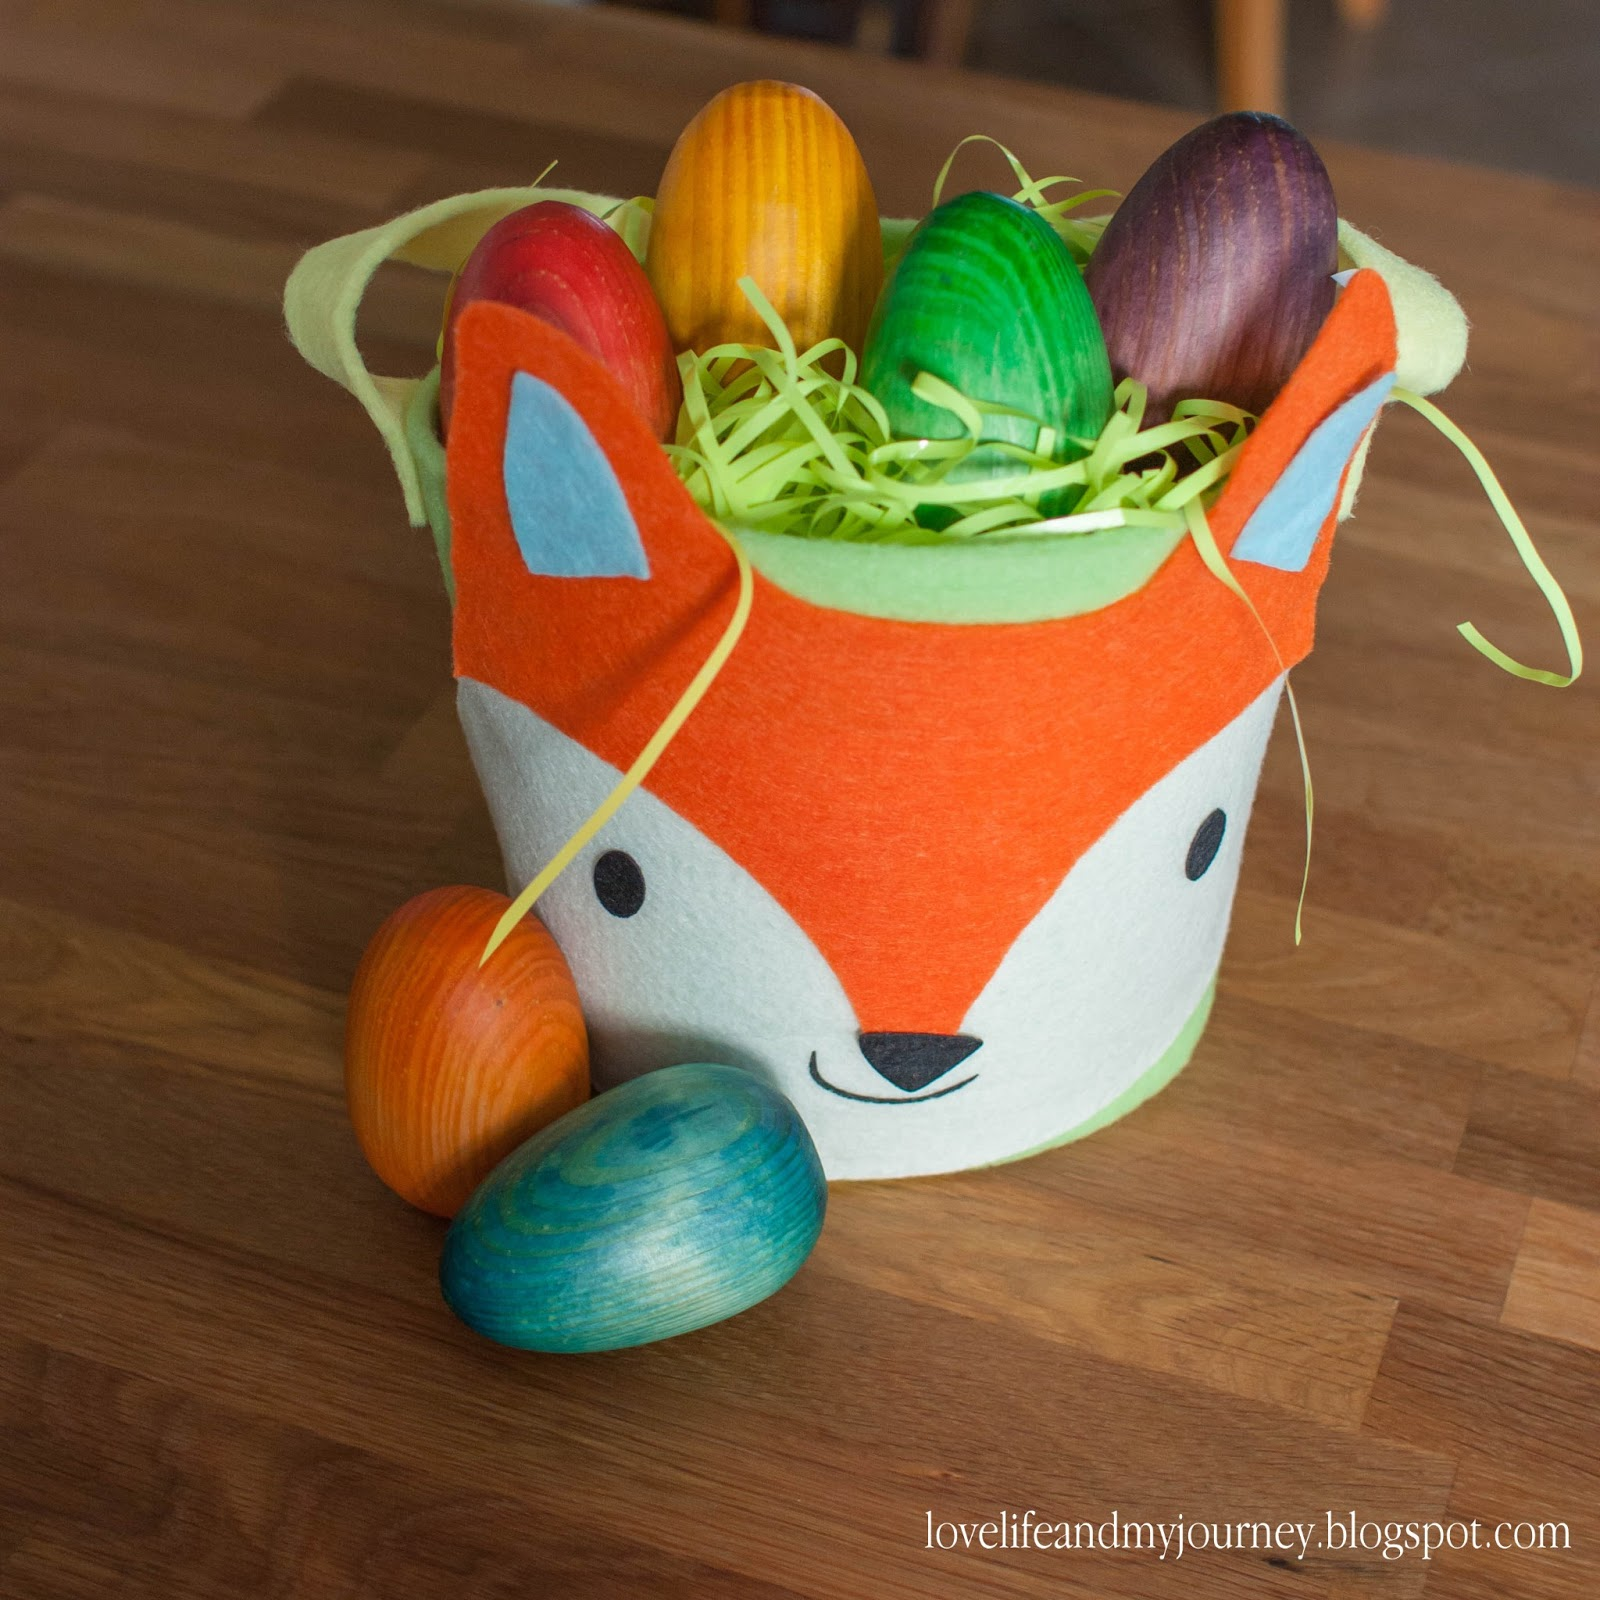 Love Life and My Journey: DIY Wooden Toy Eggs